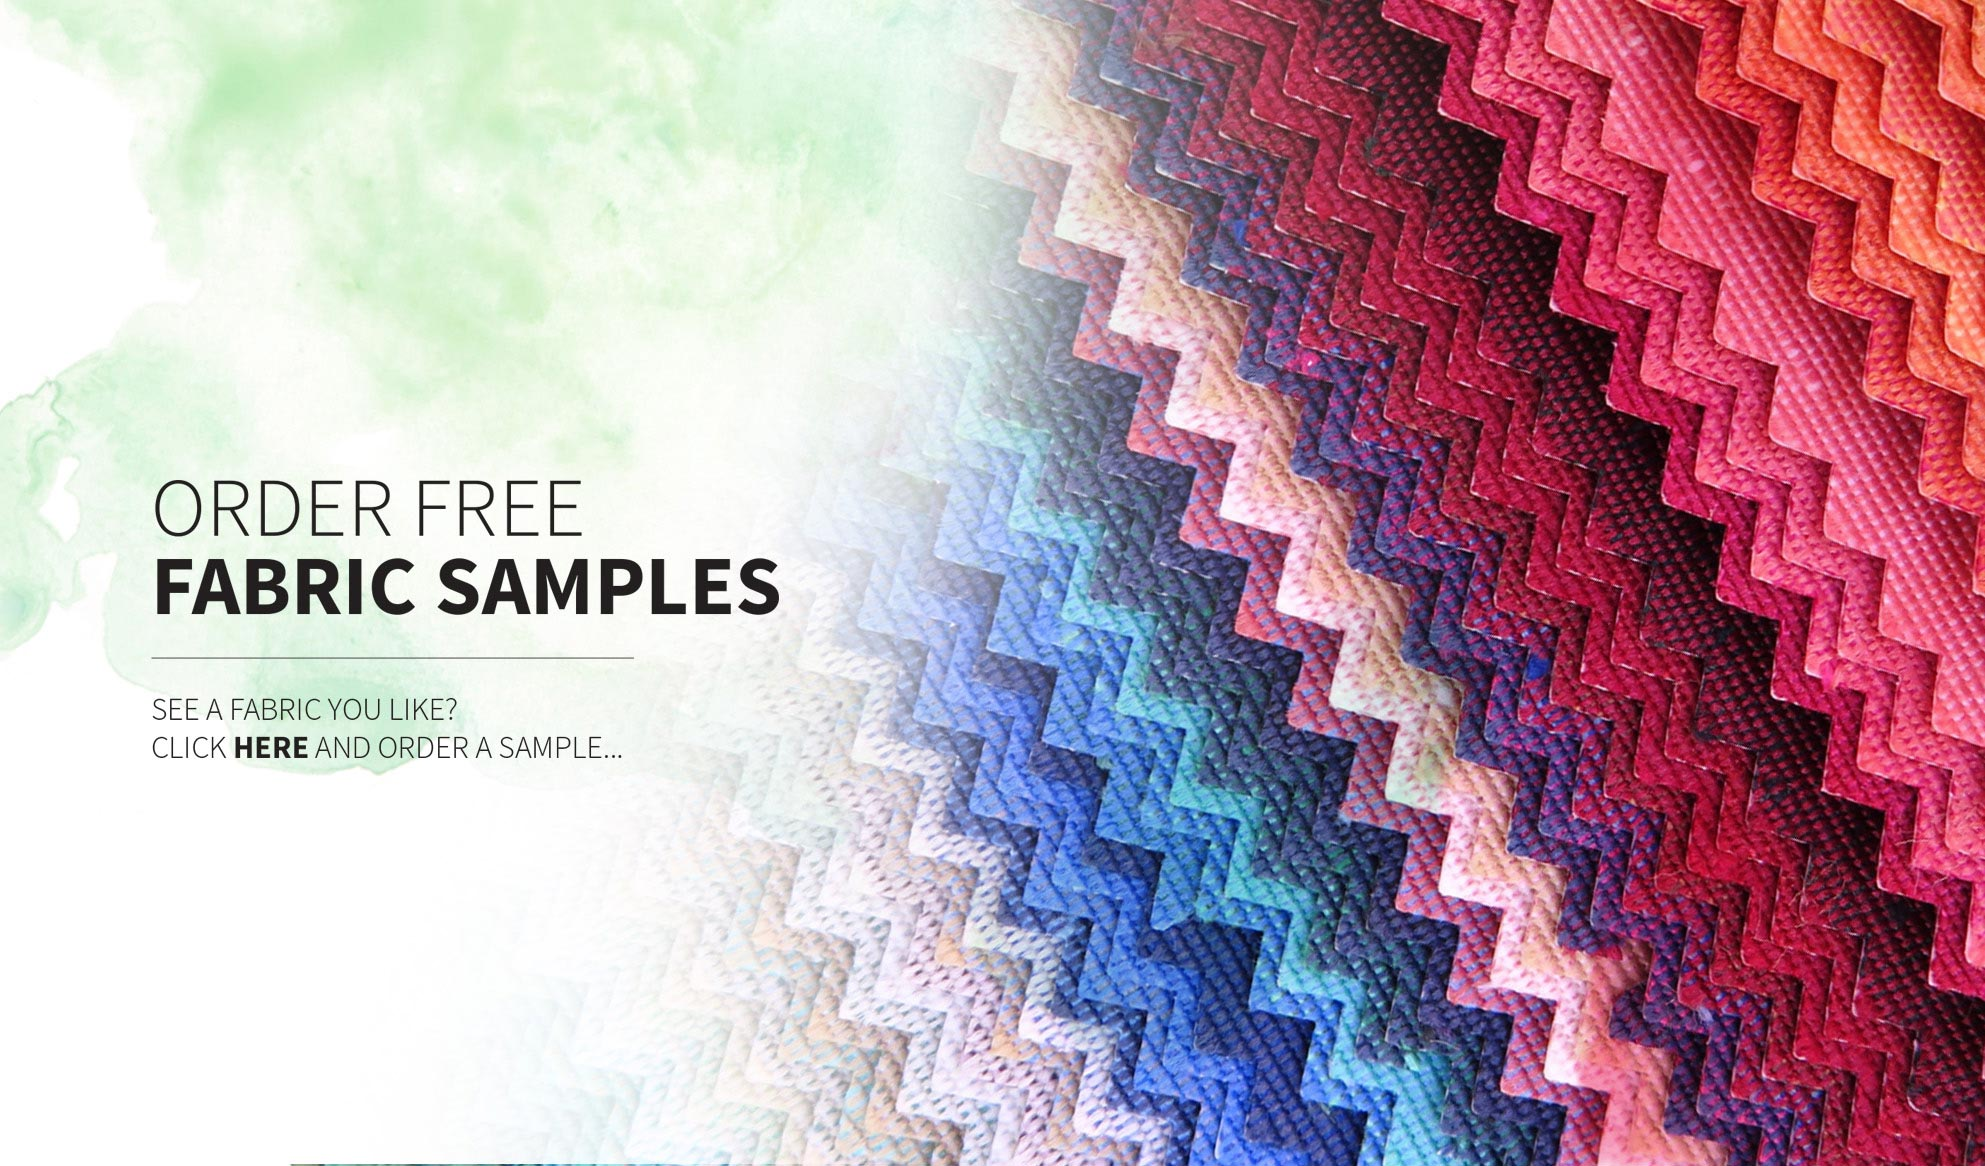 Order free fabric samples